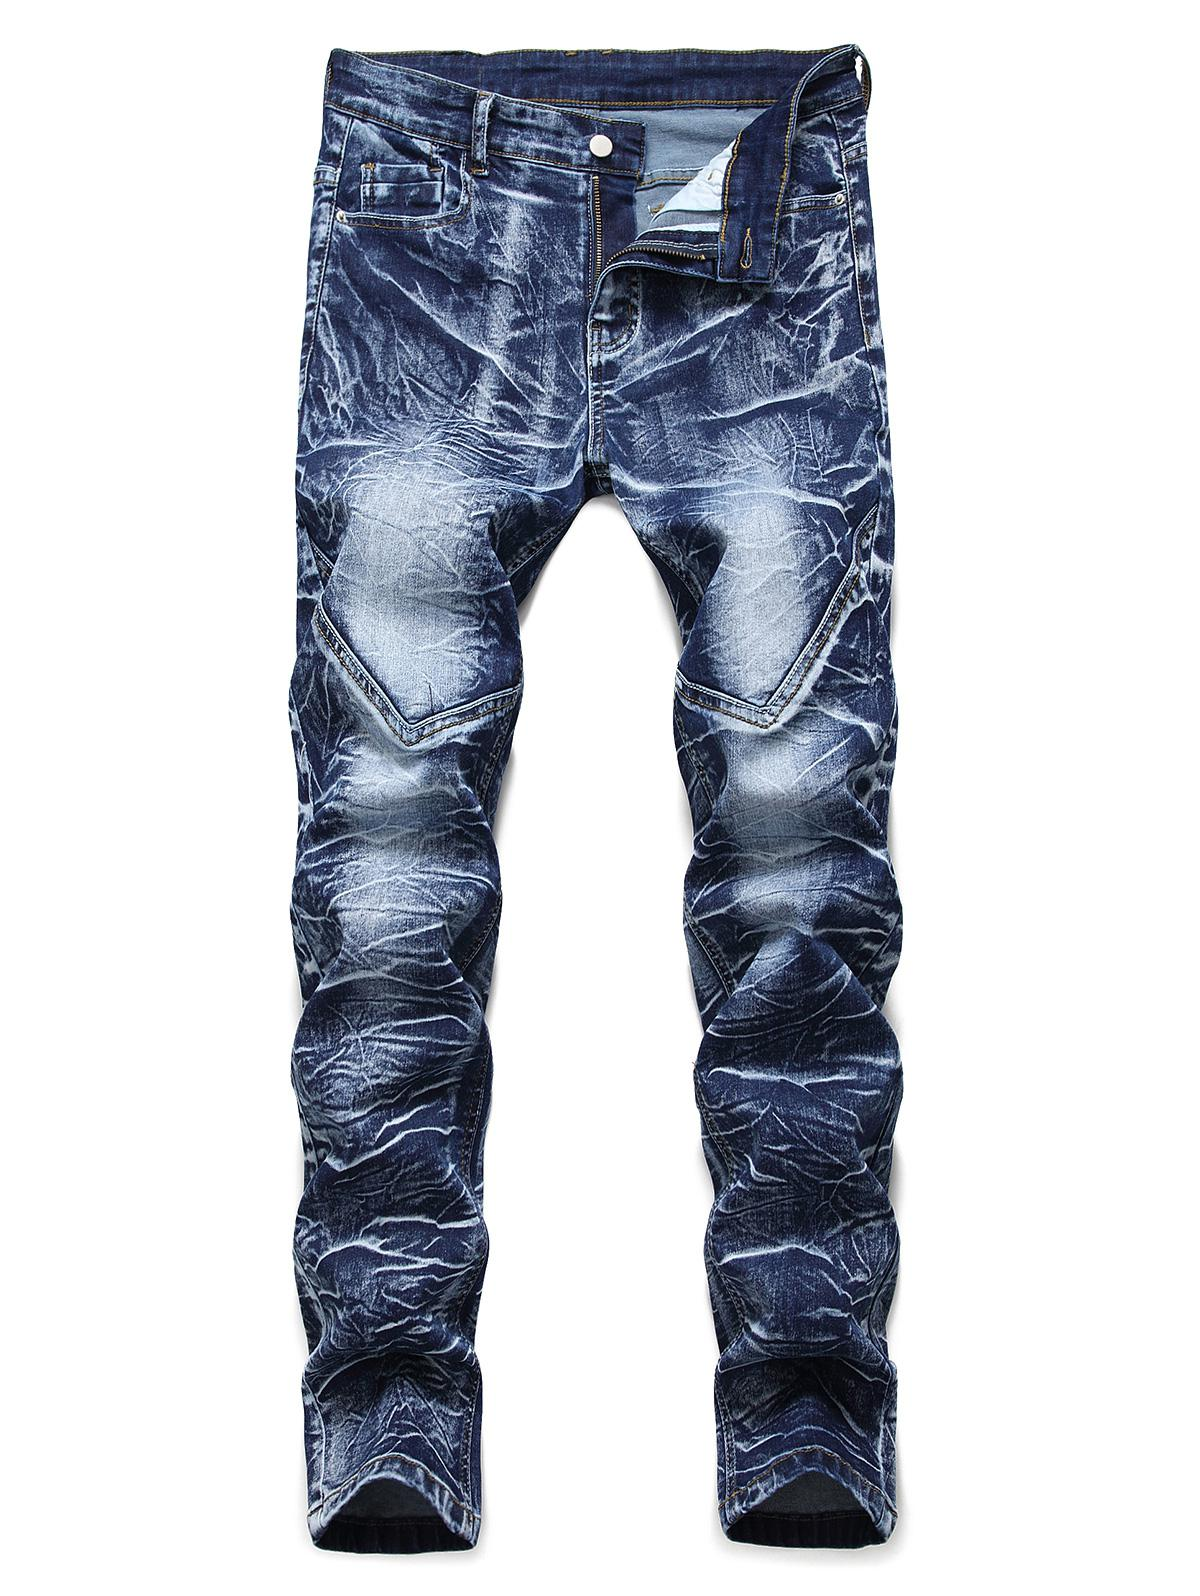 Casual Printed Zip Fly Jeans фото